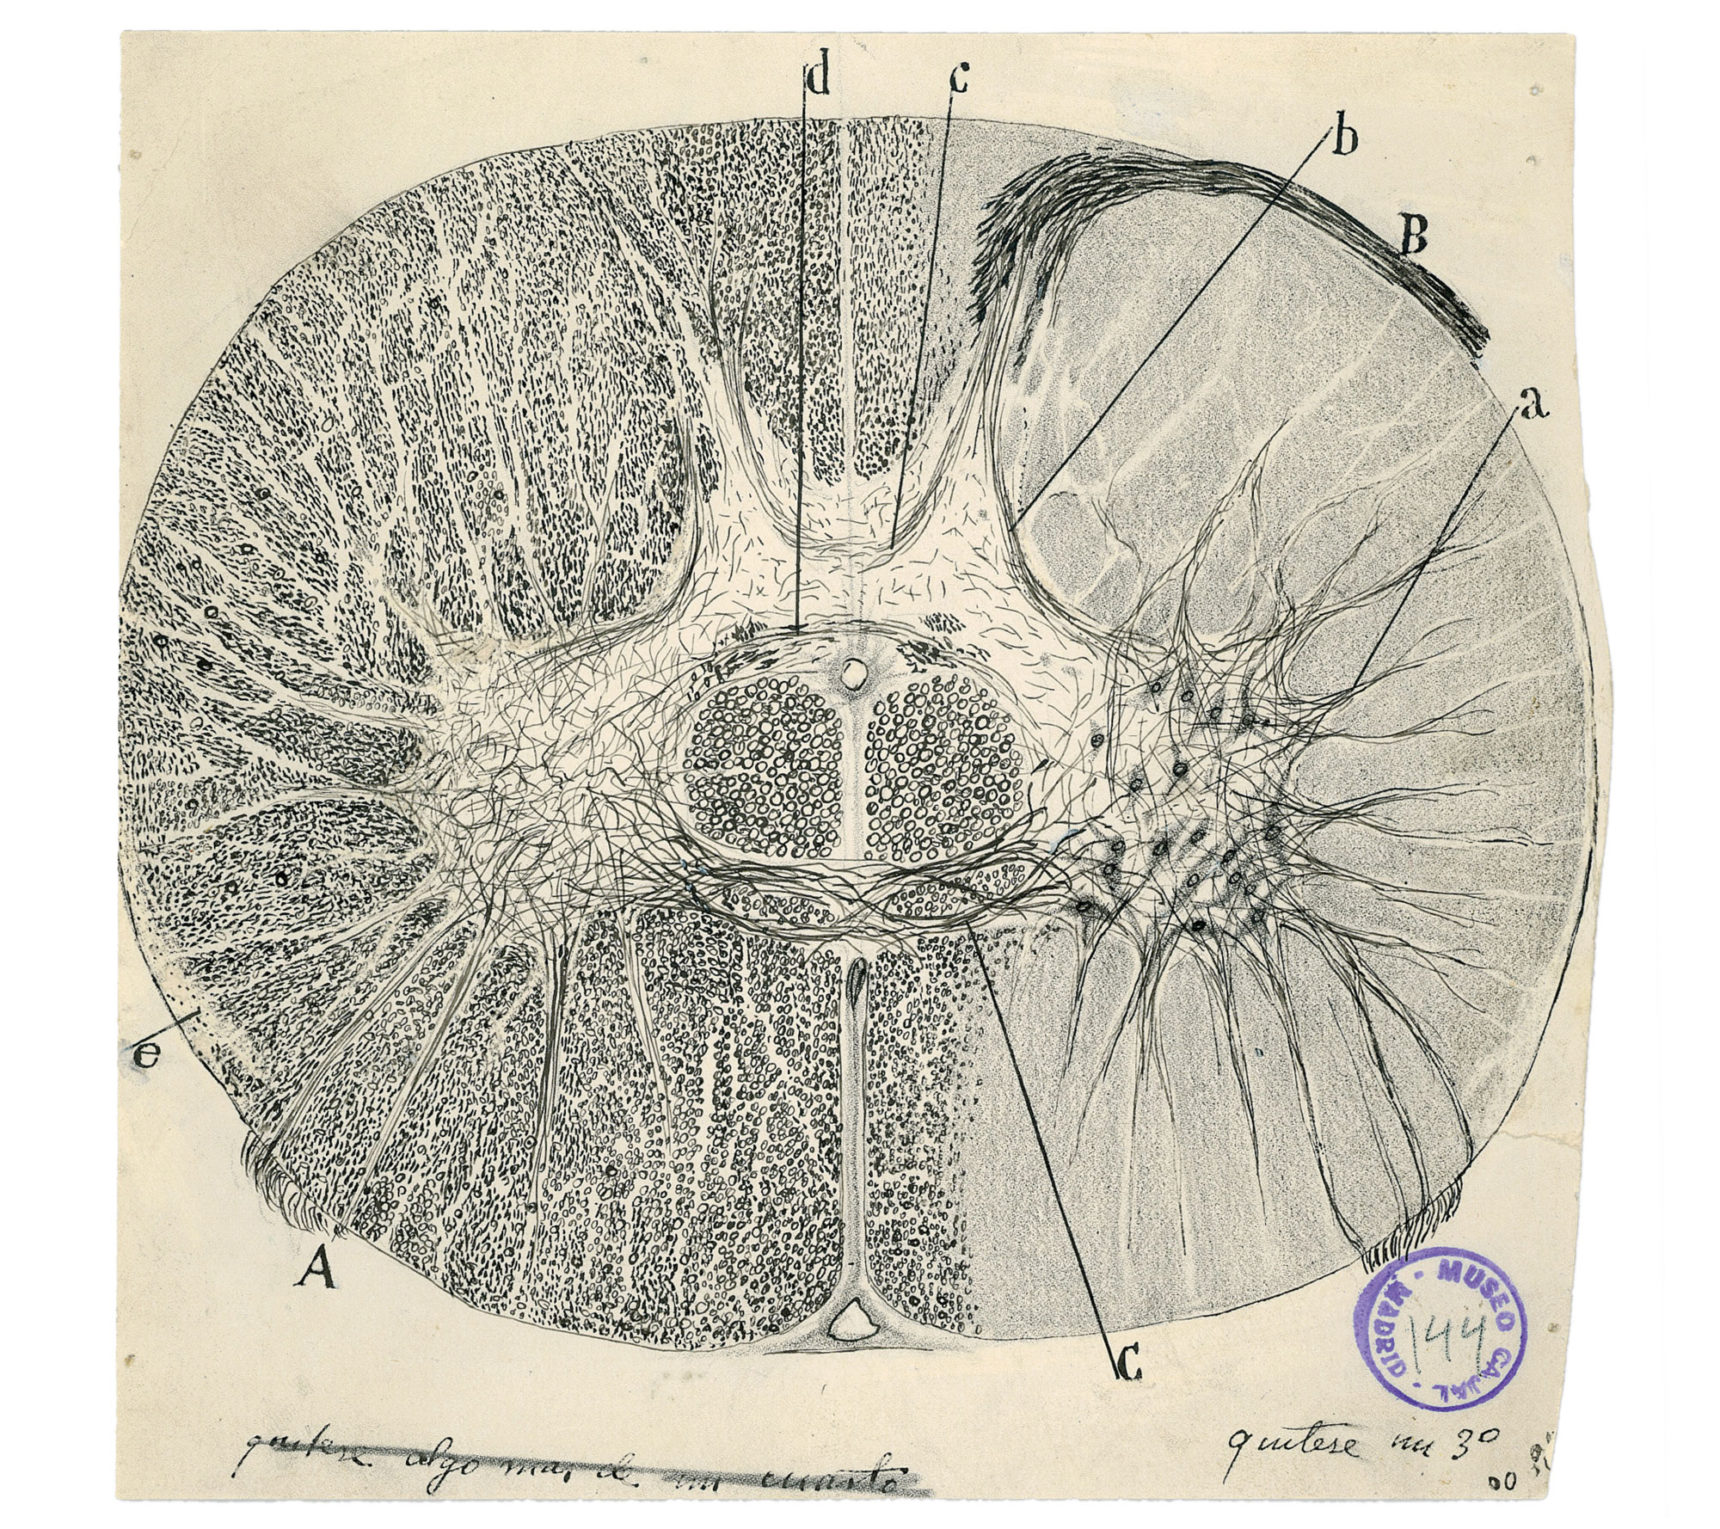 These two graceful depictions of neurons in the spinal cord are extraordinary in their fine detail.